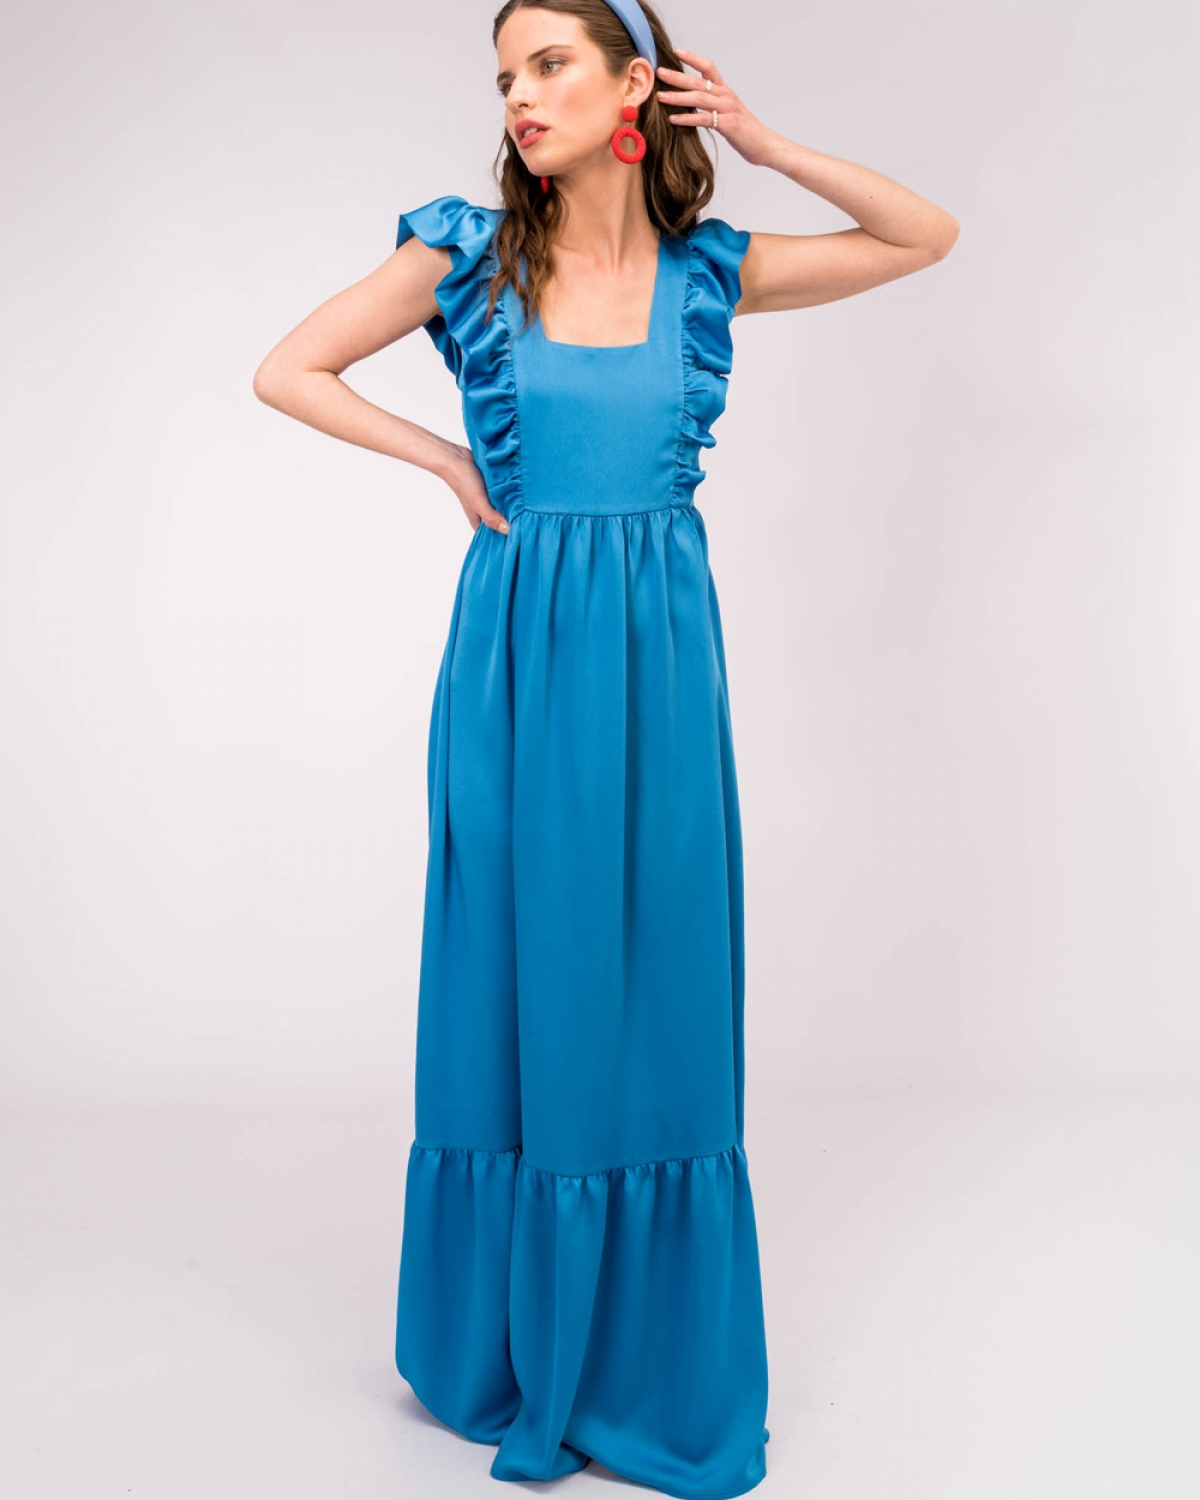 Tinda Blue Dress